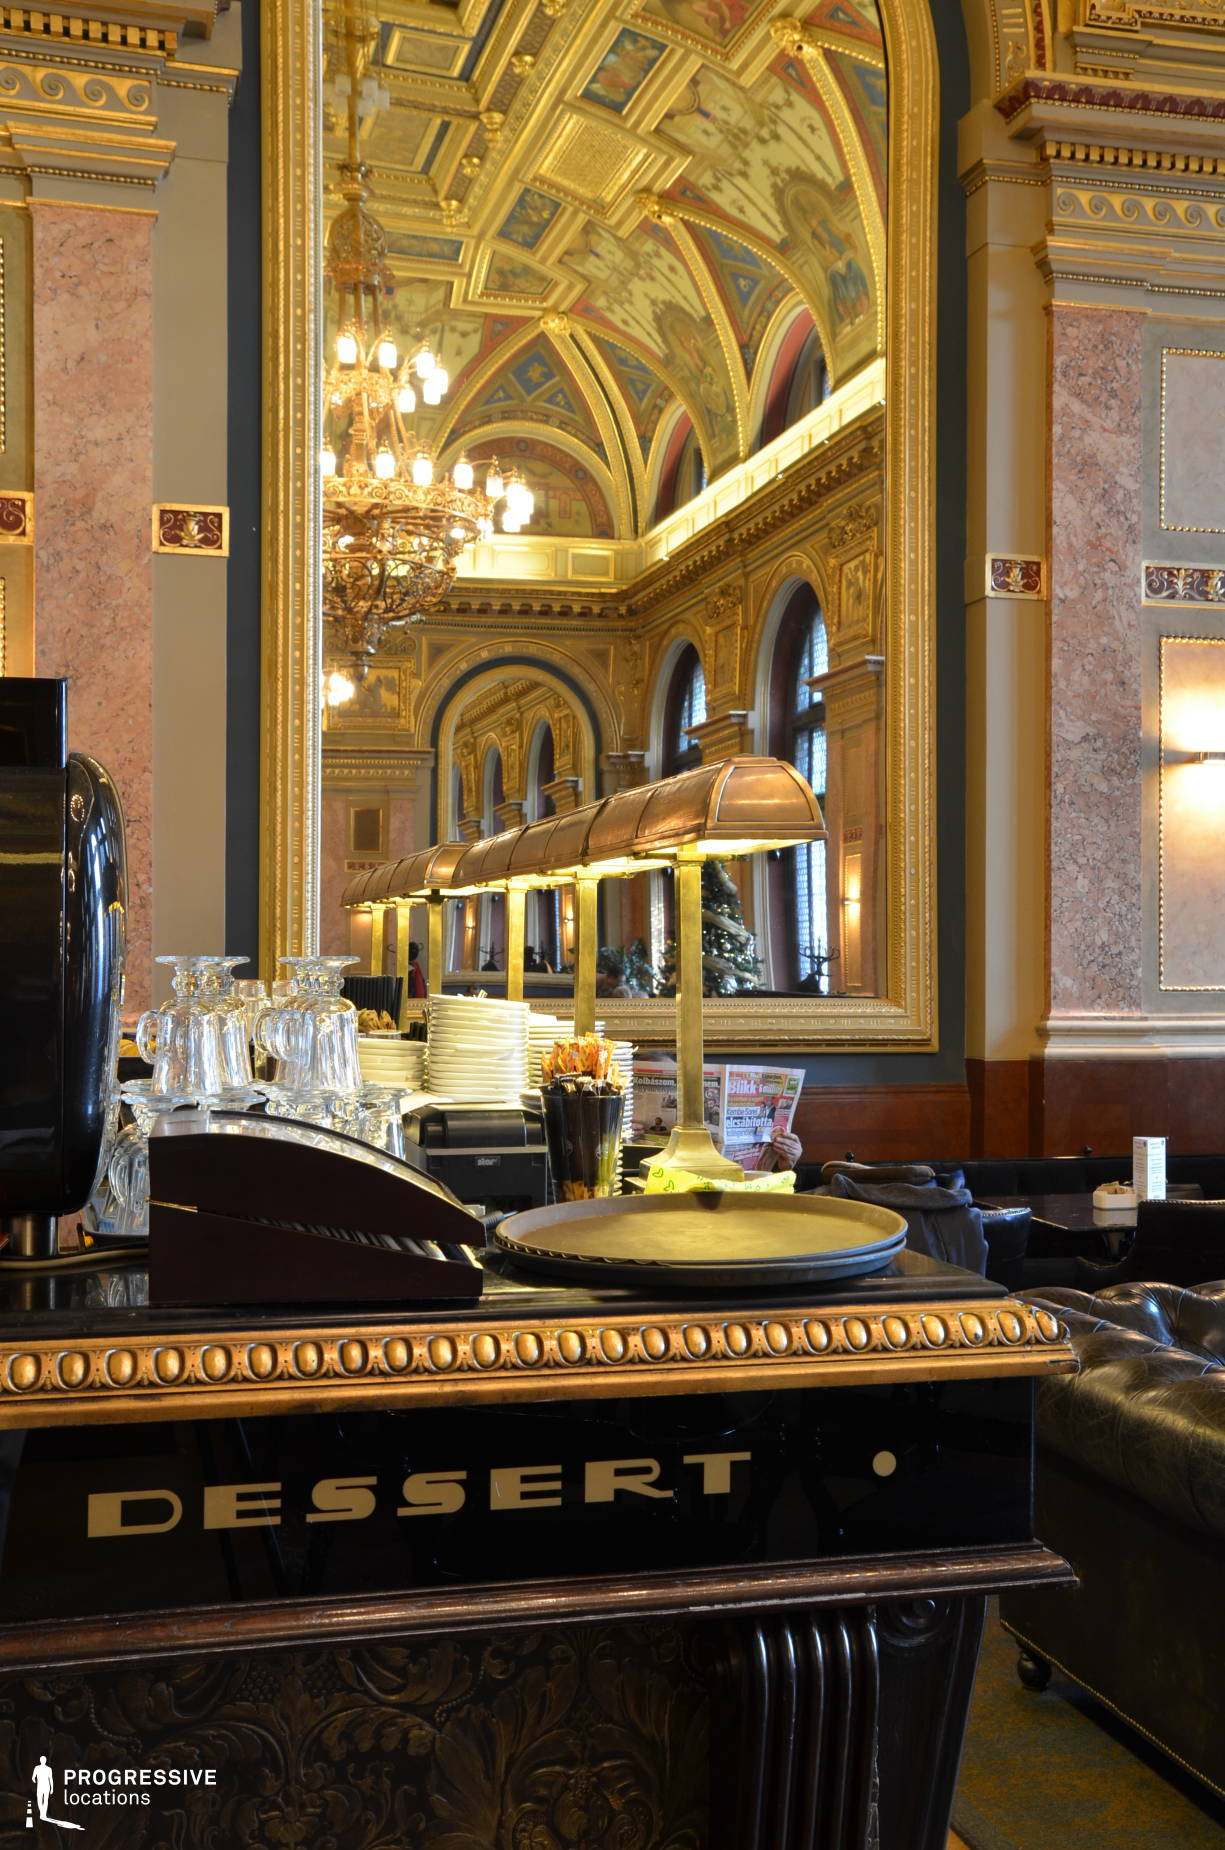 Locations in Hungary: Counter %26 Mirror, Lotz Cafe